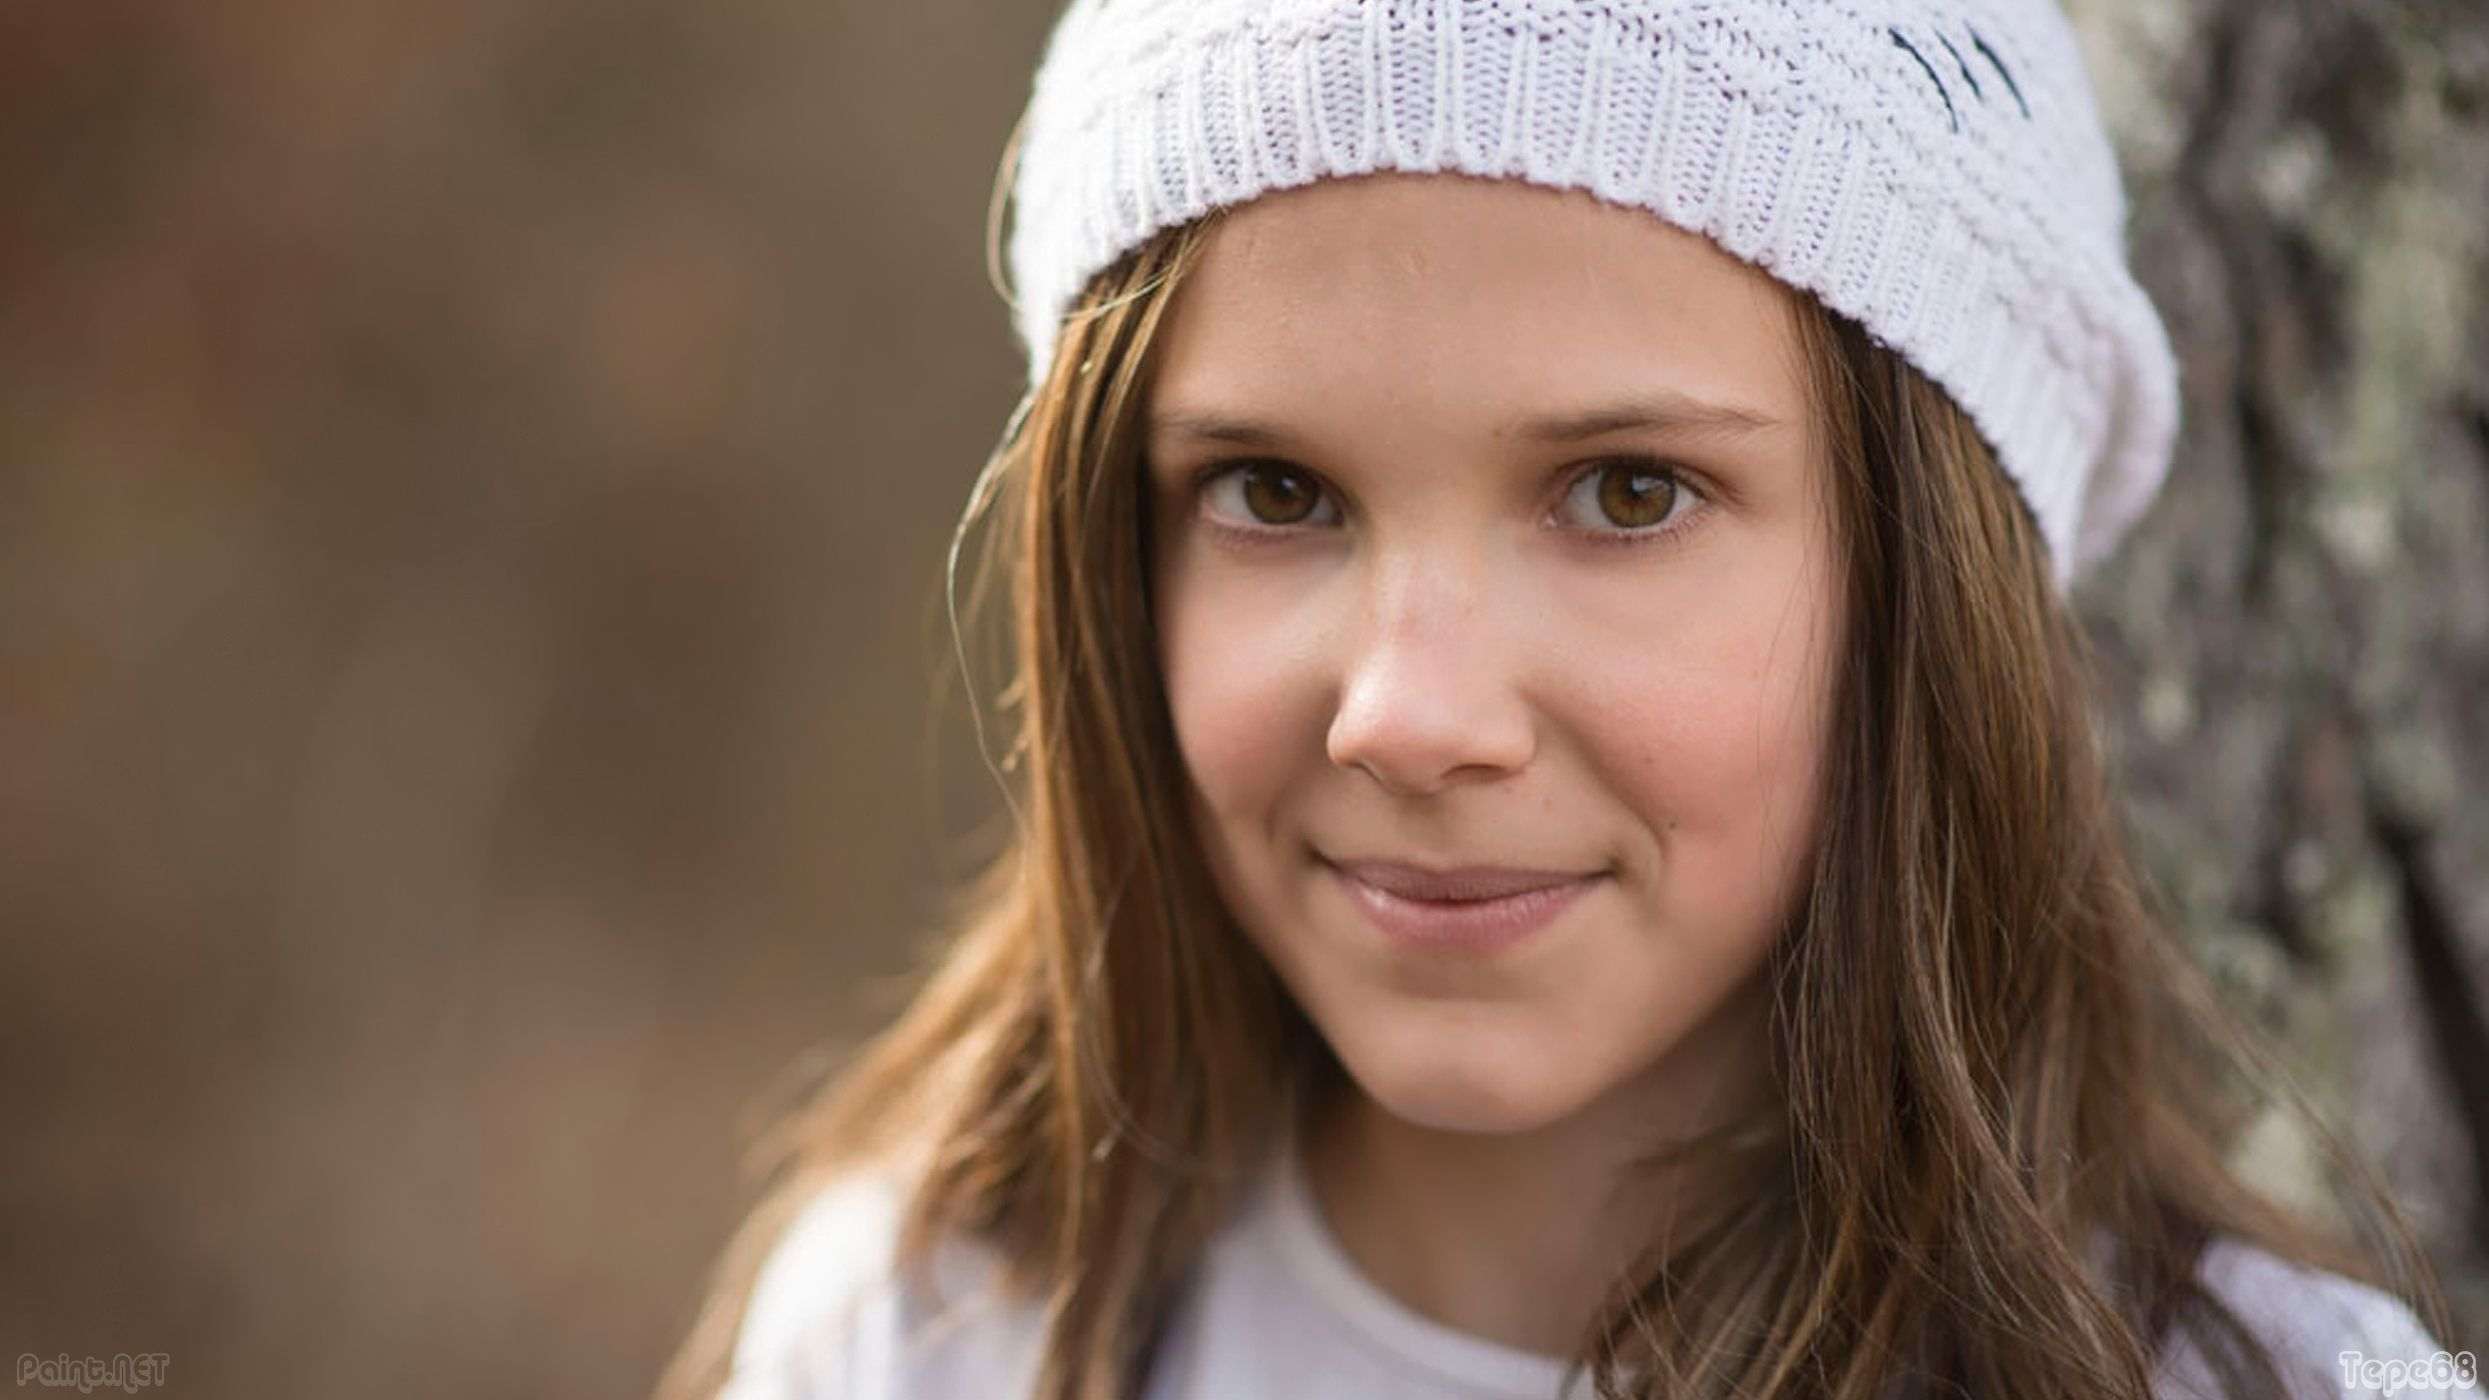 millie bobby brown beanie wallpaper 71723